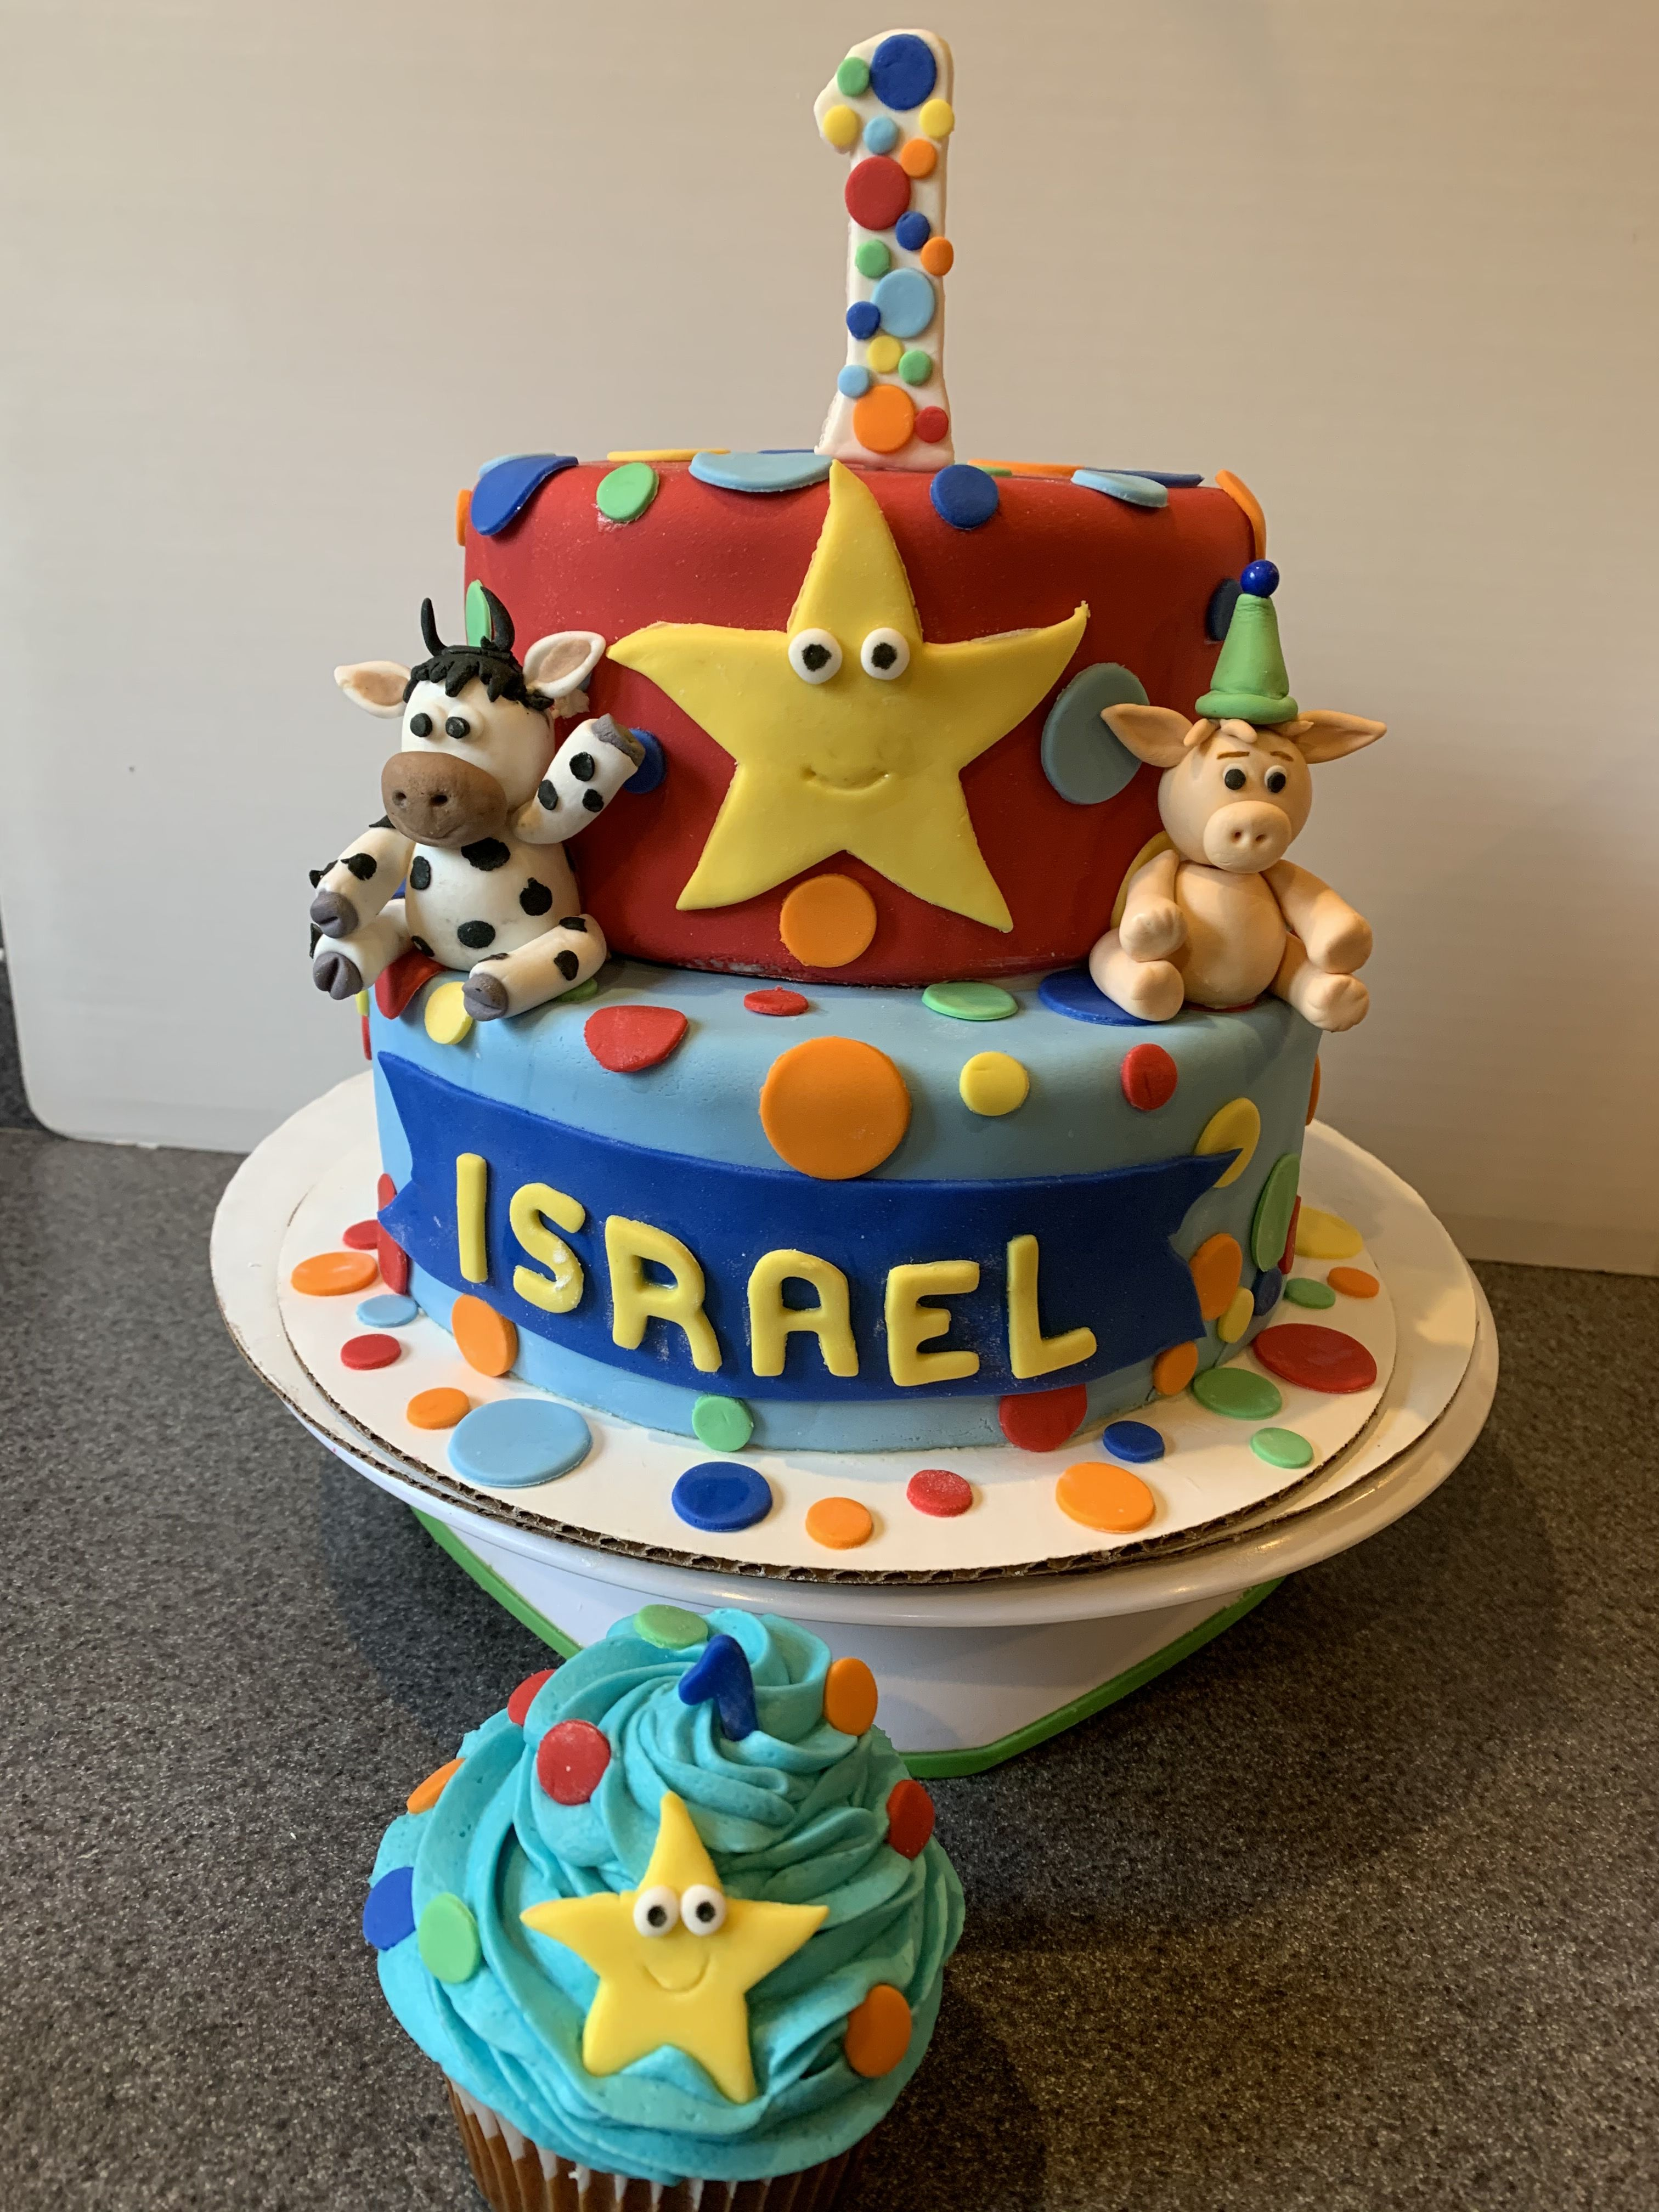 Pin by betty's cakes on Birthday cakes/cupcakes in 2020